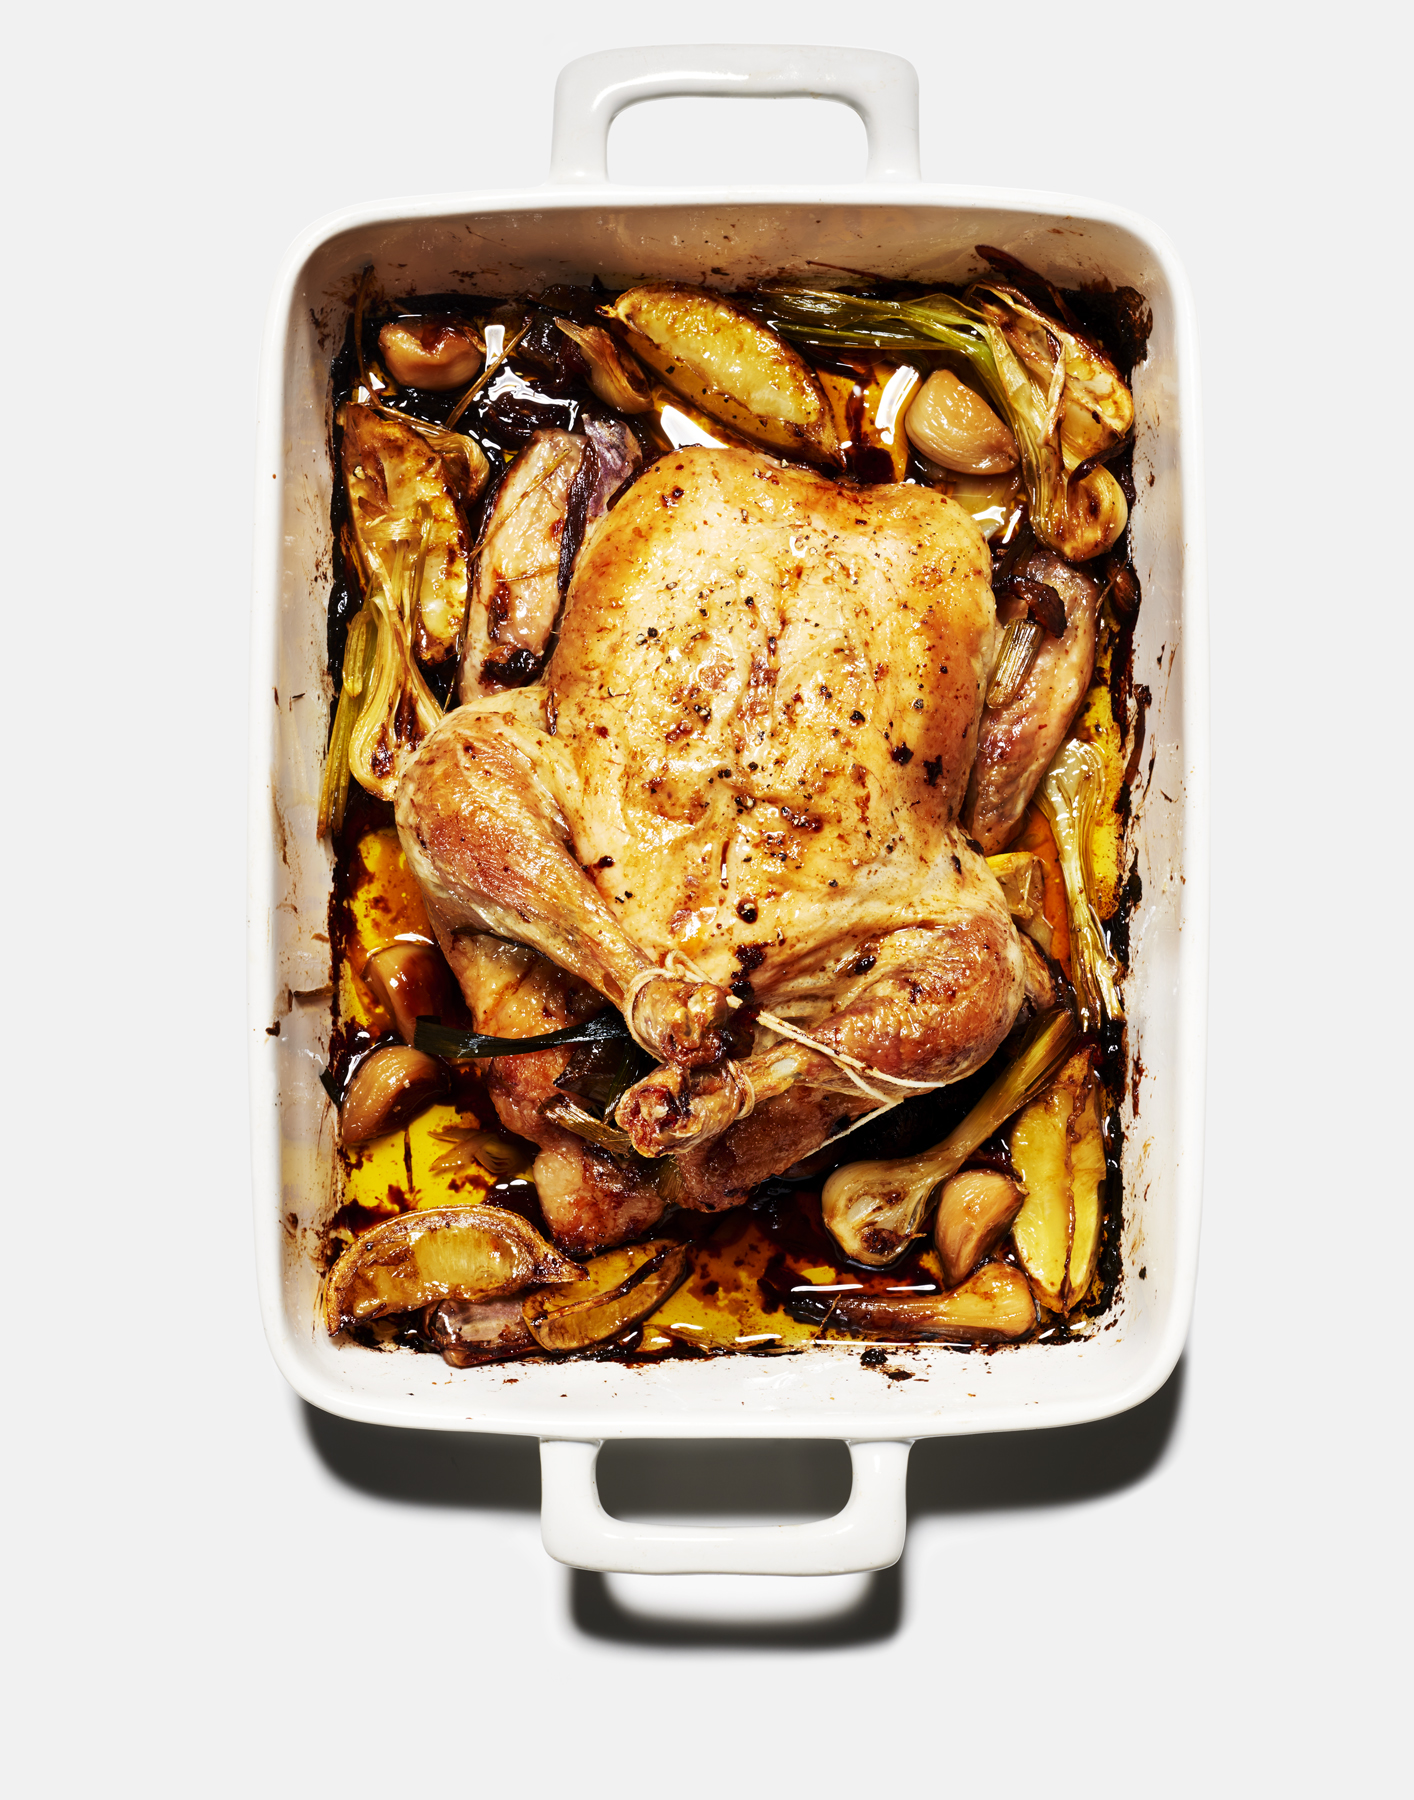 150527-BA-Alliums-Roast-Chicken-376